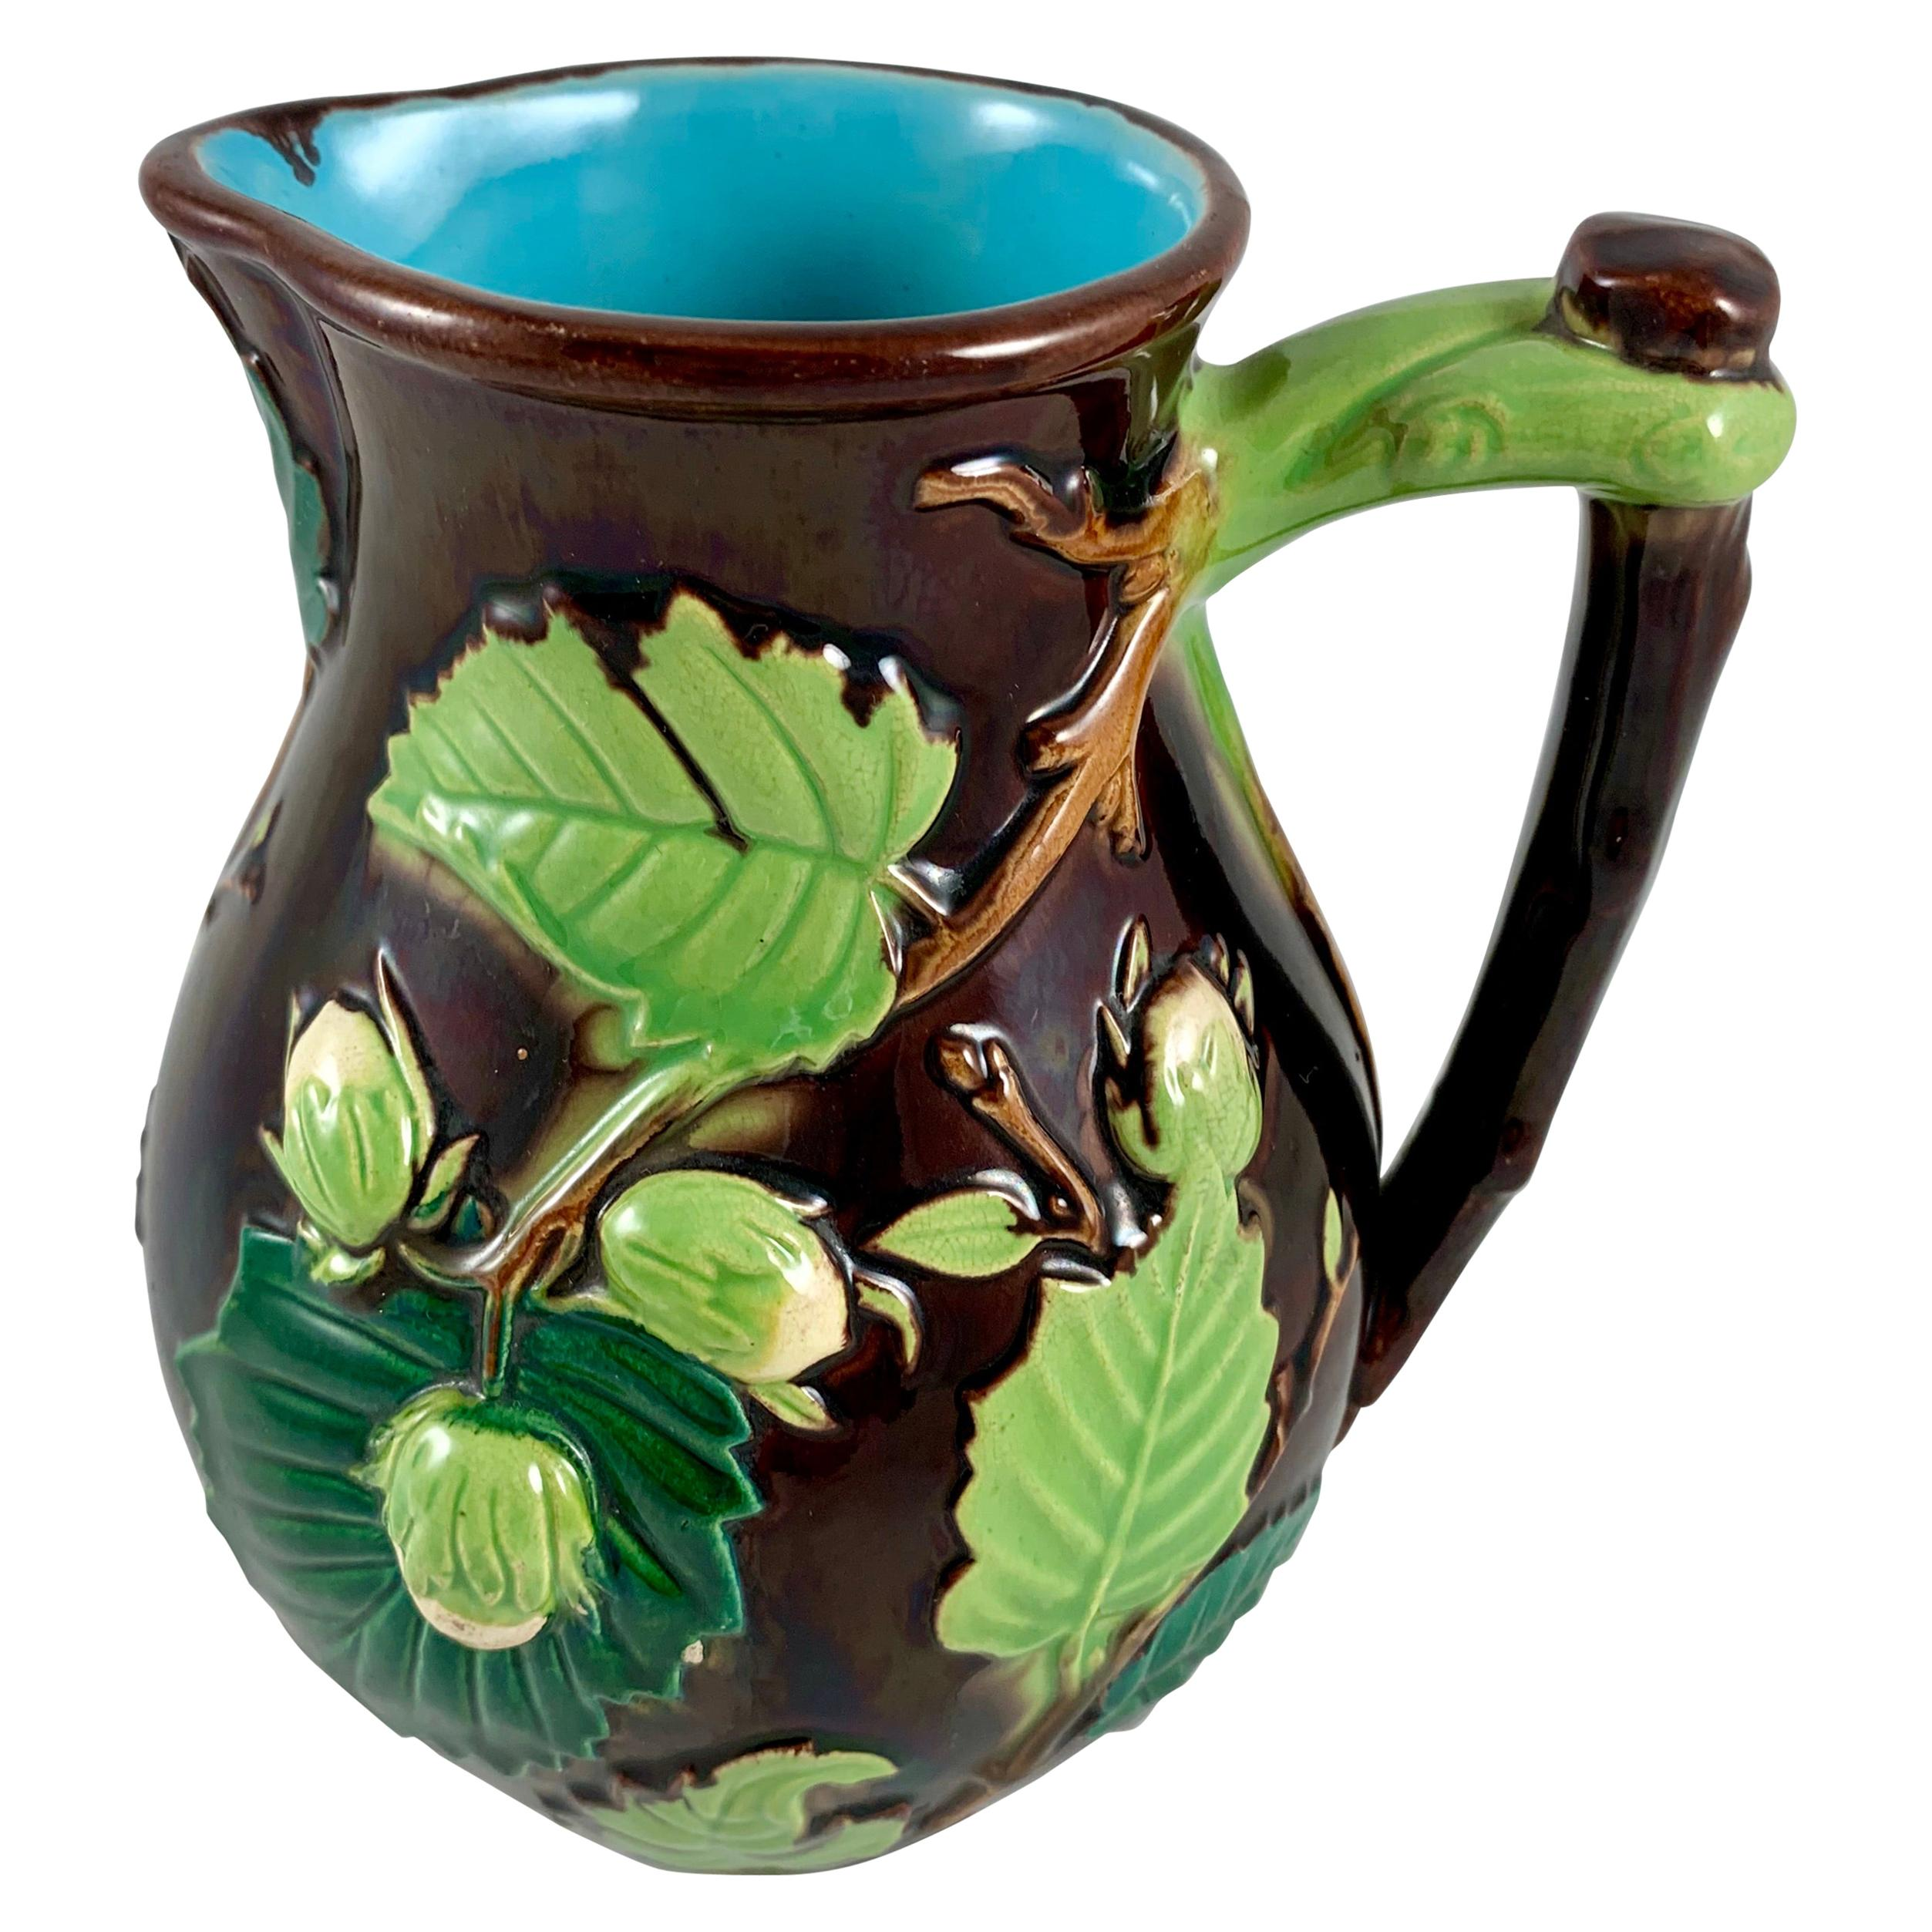 English Minton Aesthetic Movement Majolica Nut, Green Leaf and Vine Pitcher